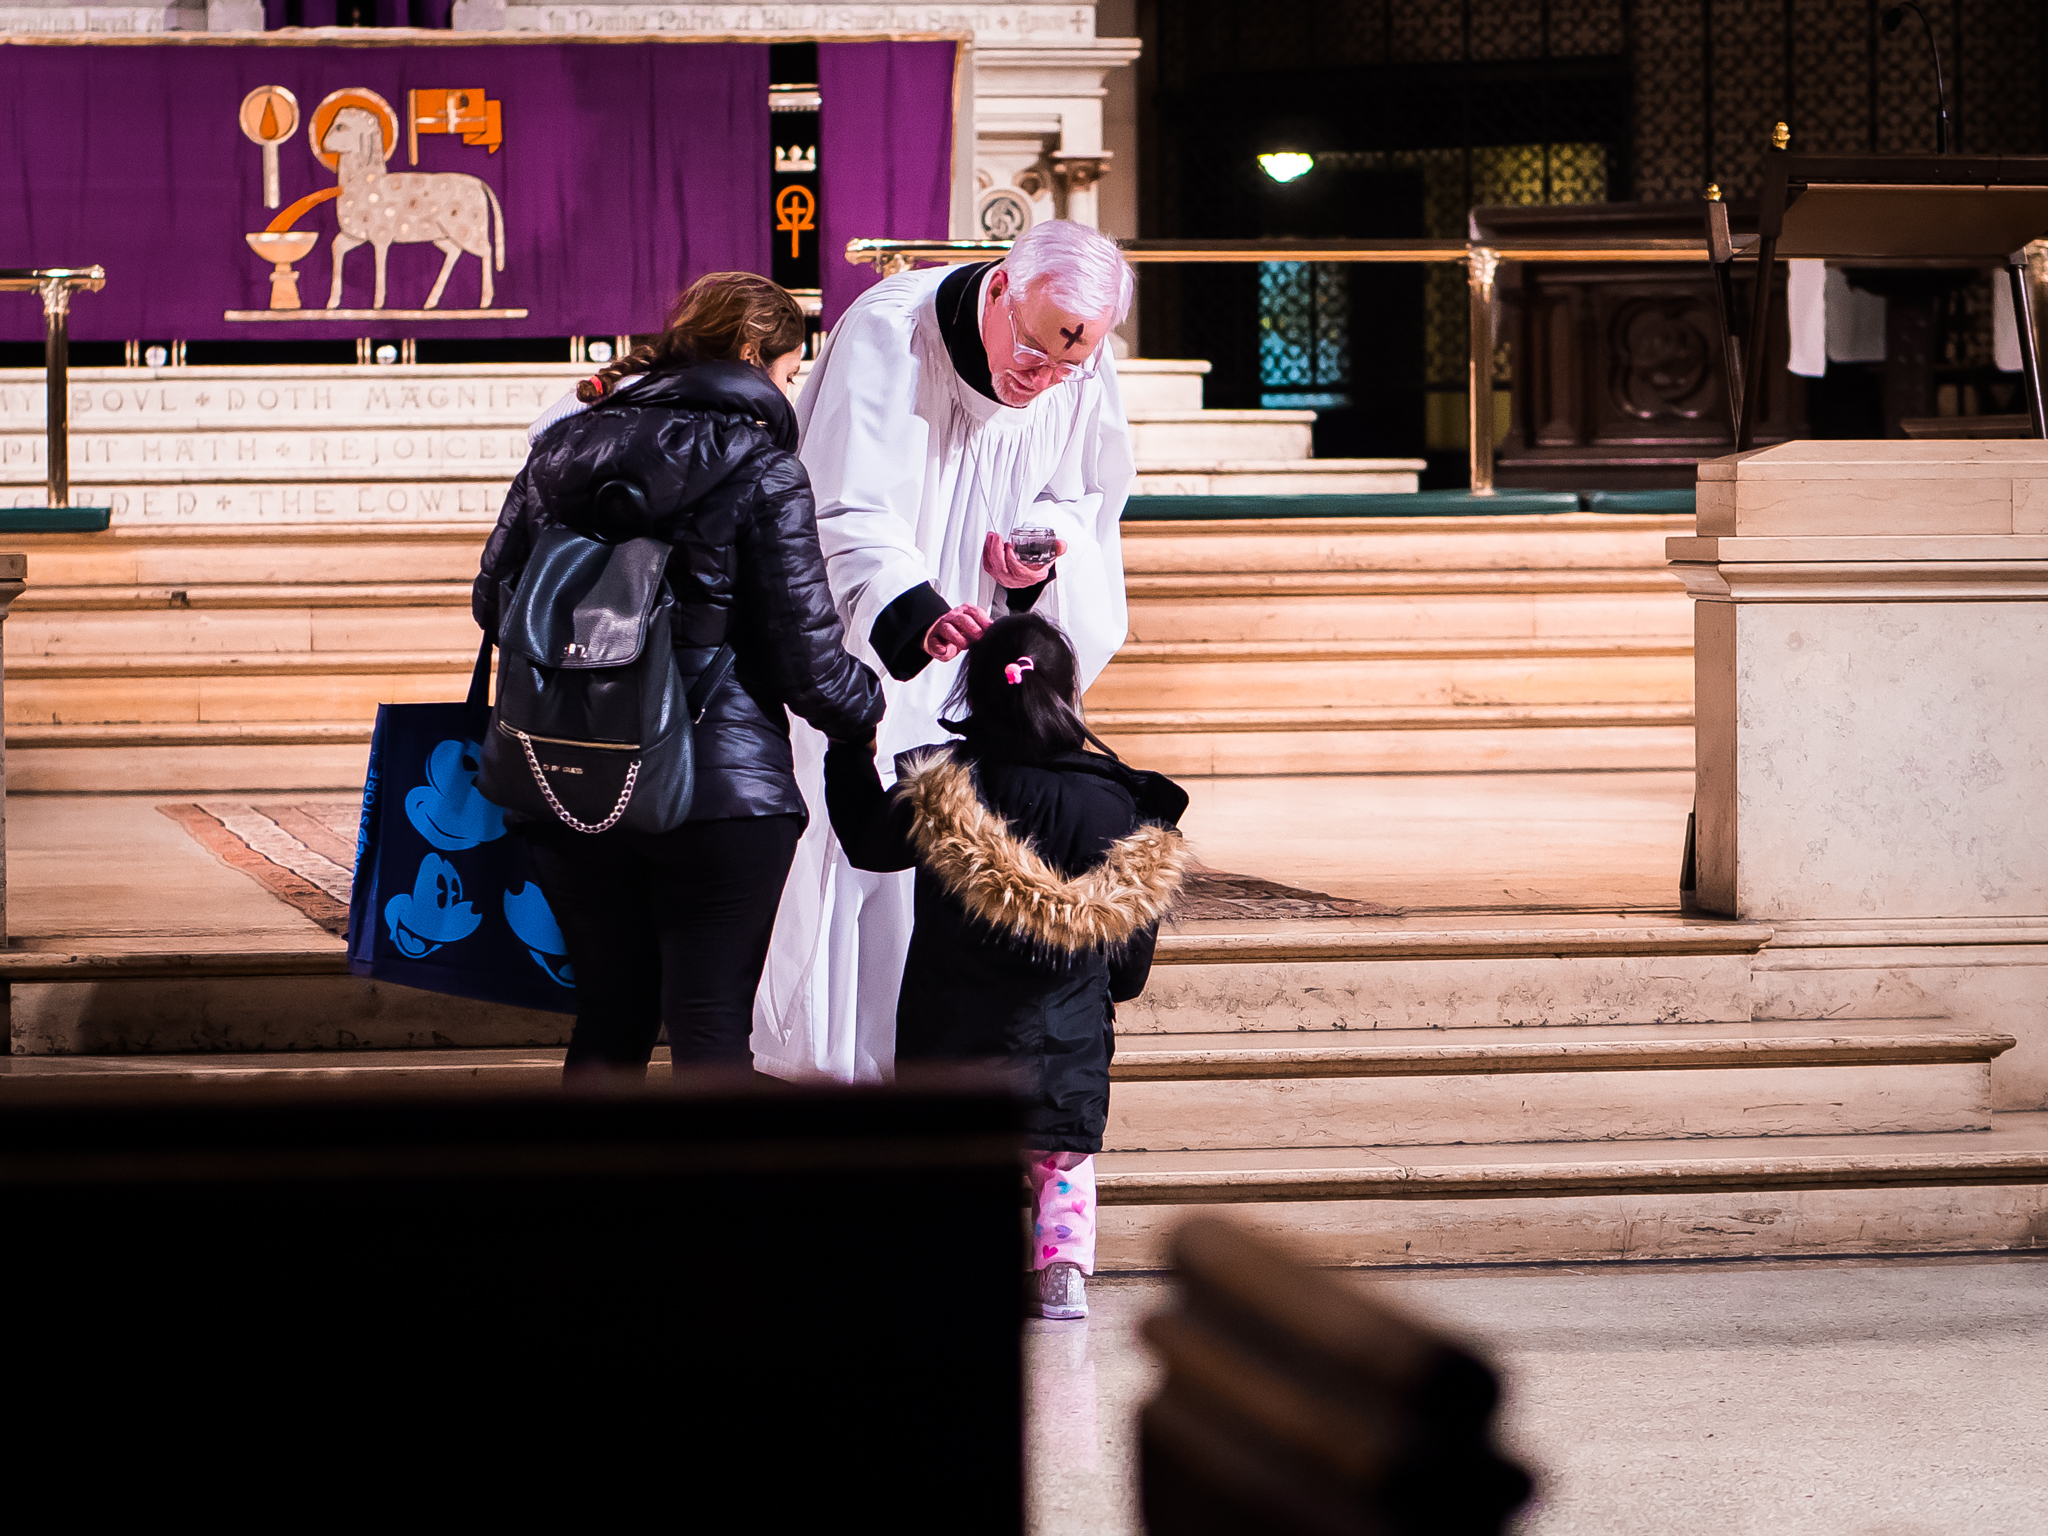 Father Pace was celebrant for the 7:00 AM Mass and returned later to assist with the imposition of ashes and to concelebrate the 6:00 PM Solemn Mass.  Photo by Ricardo Gomez